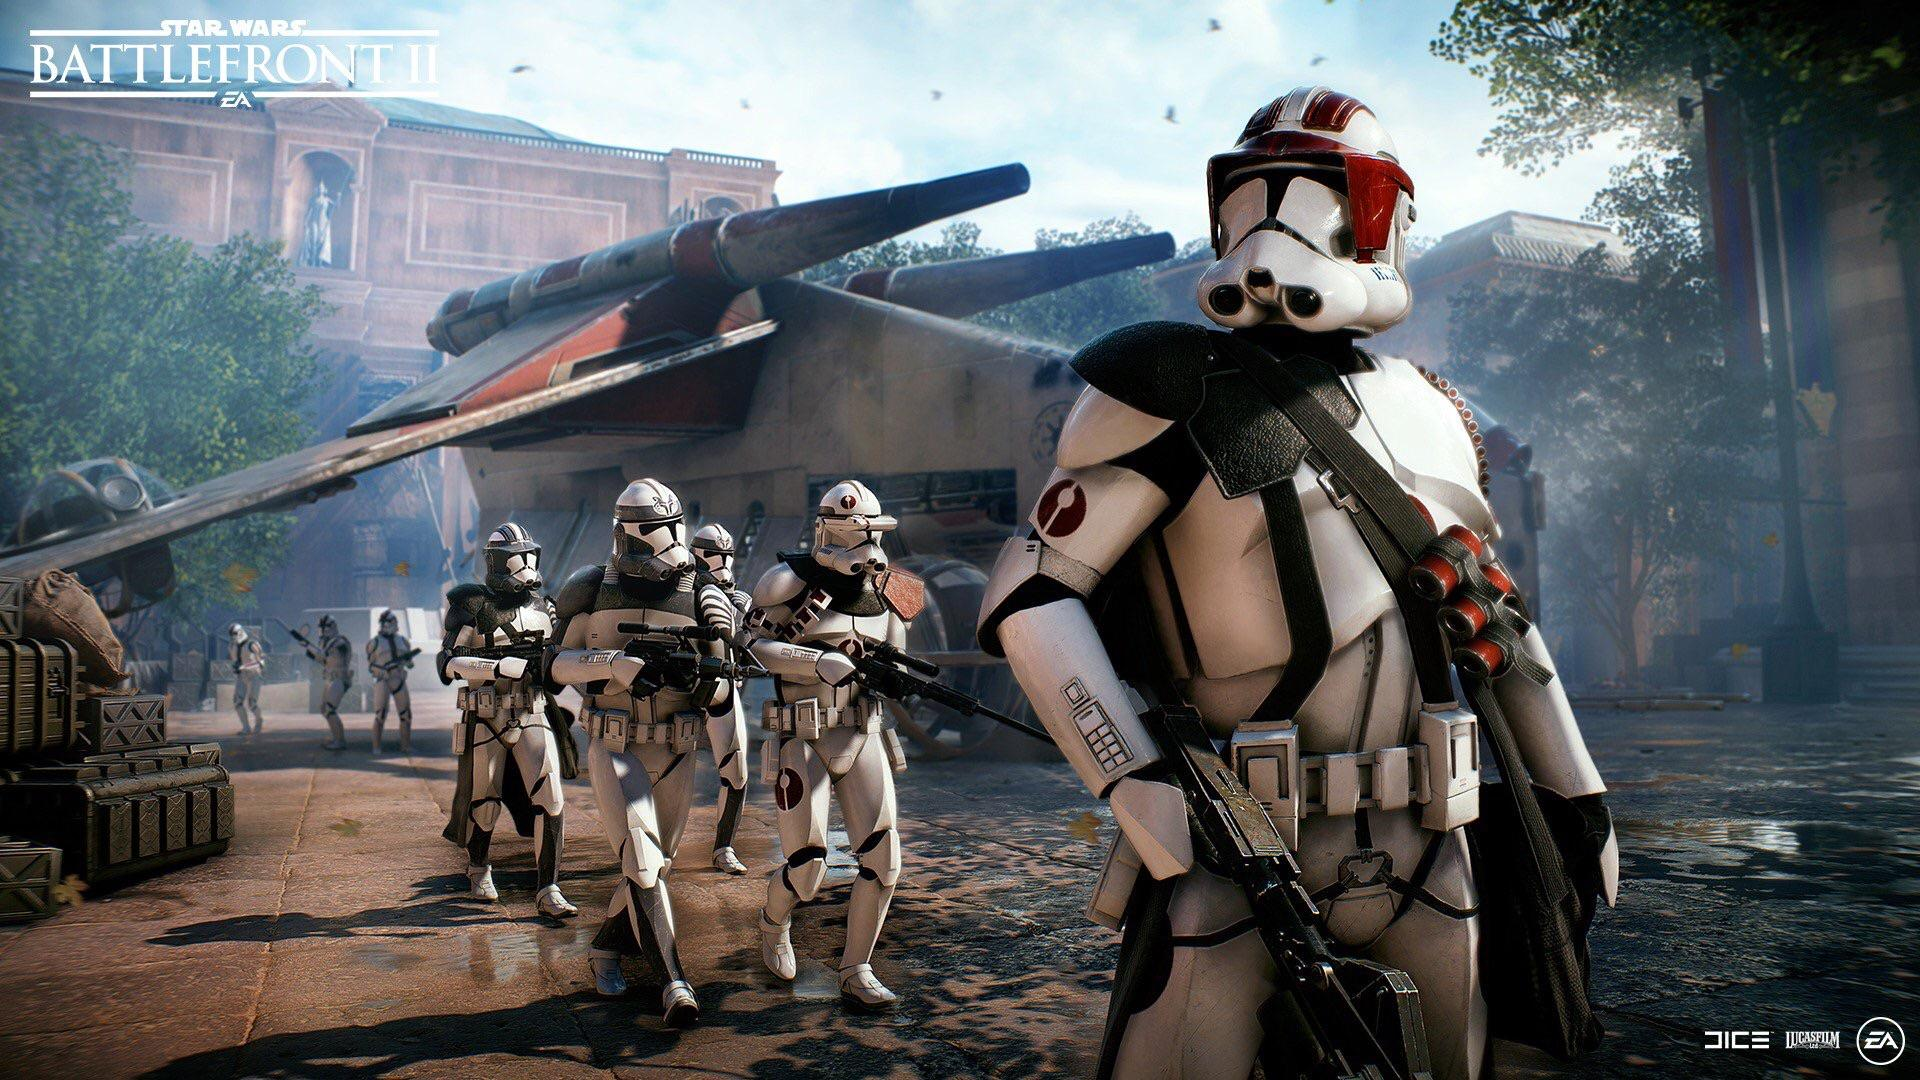 Star Wars Battlefront 2 Hd Wallpaper Posted By Samantha Tremblay